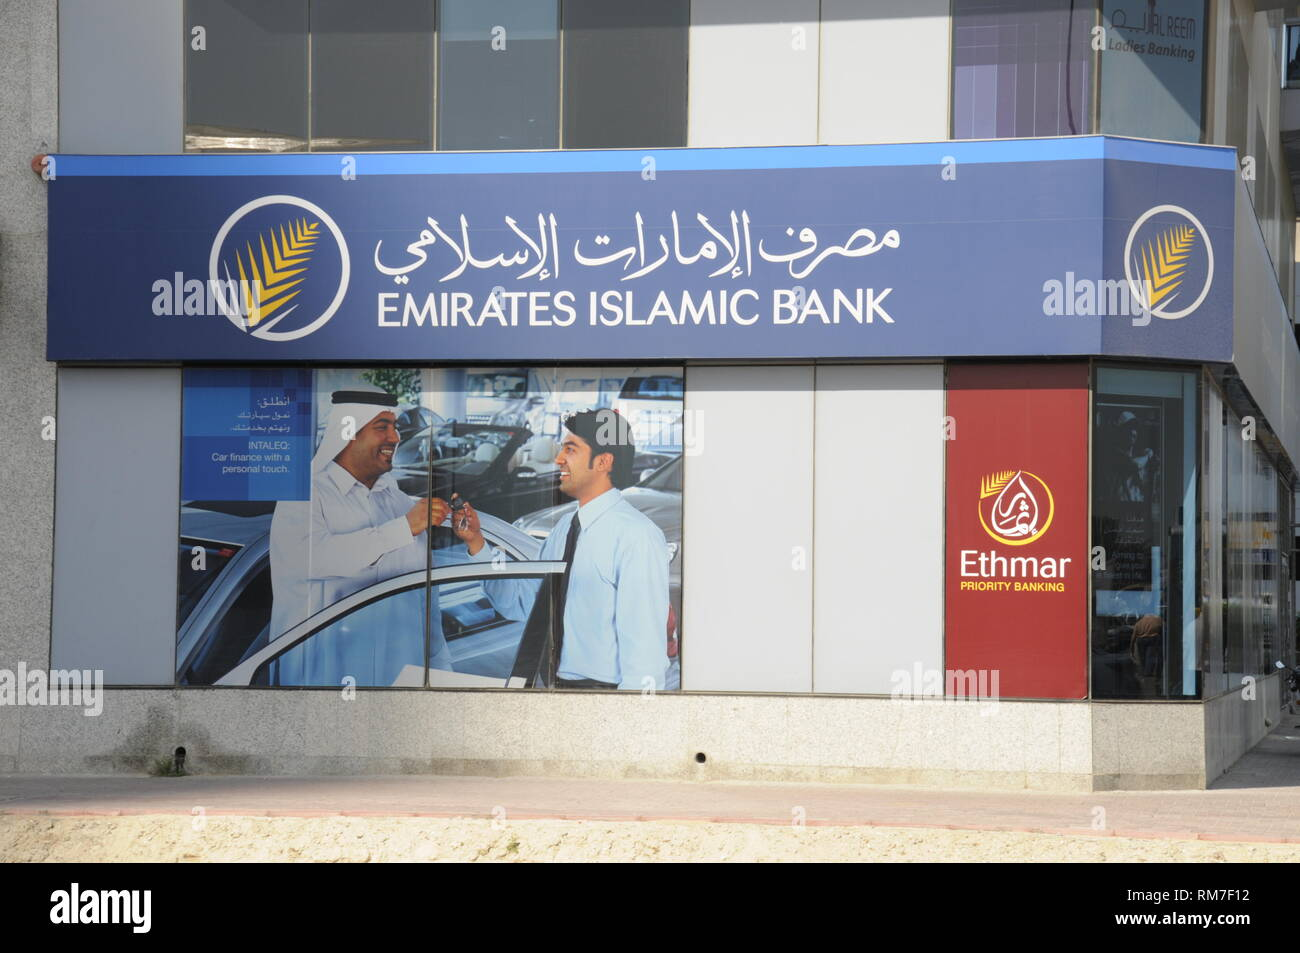 Emirates Islamic Bank High Resolution Stock Photography And Images Alamy